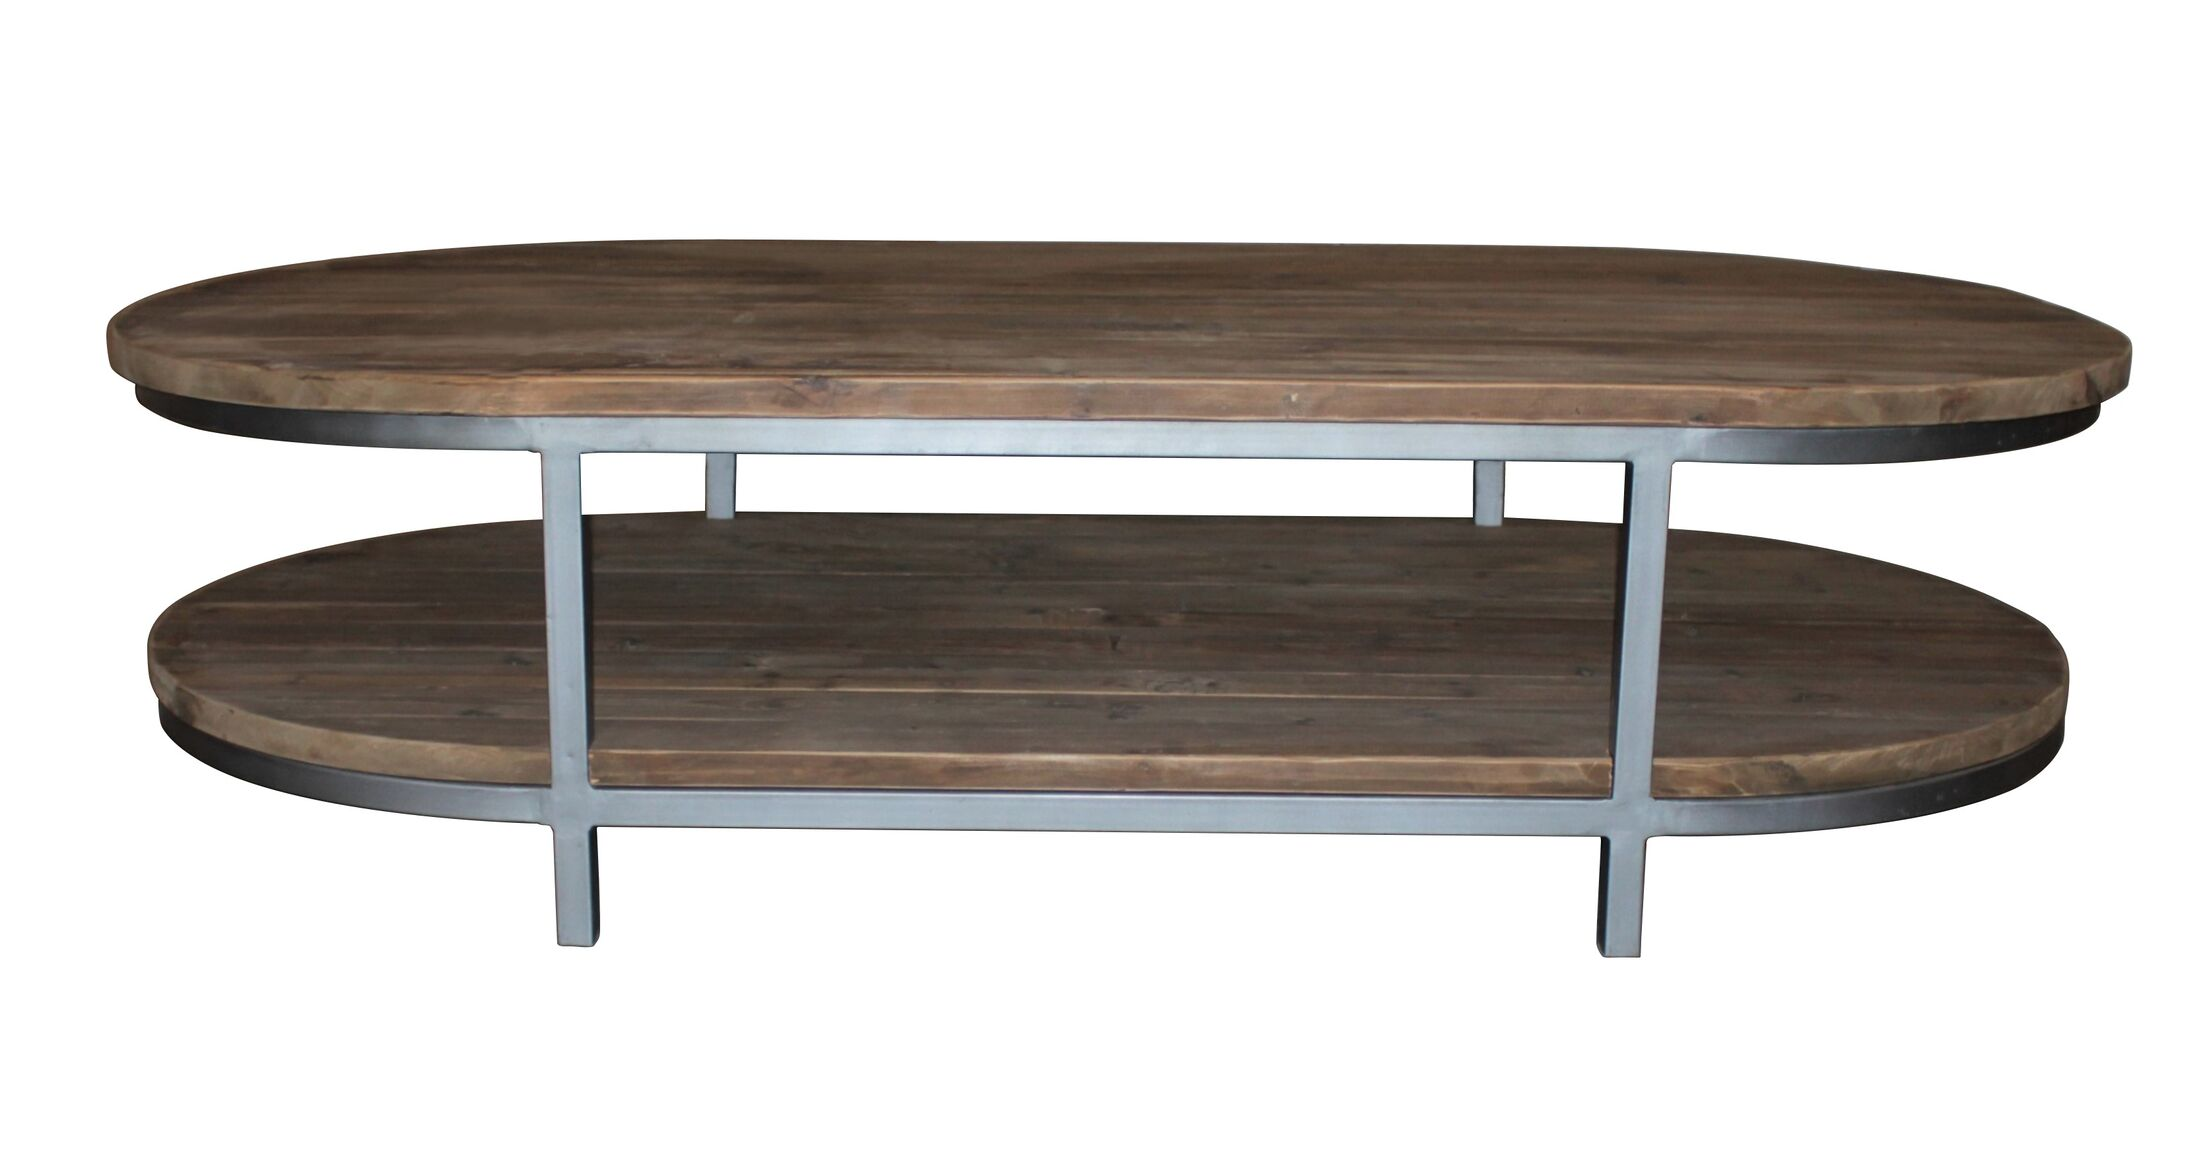 Berlinville Coffee Table